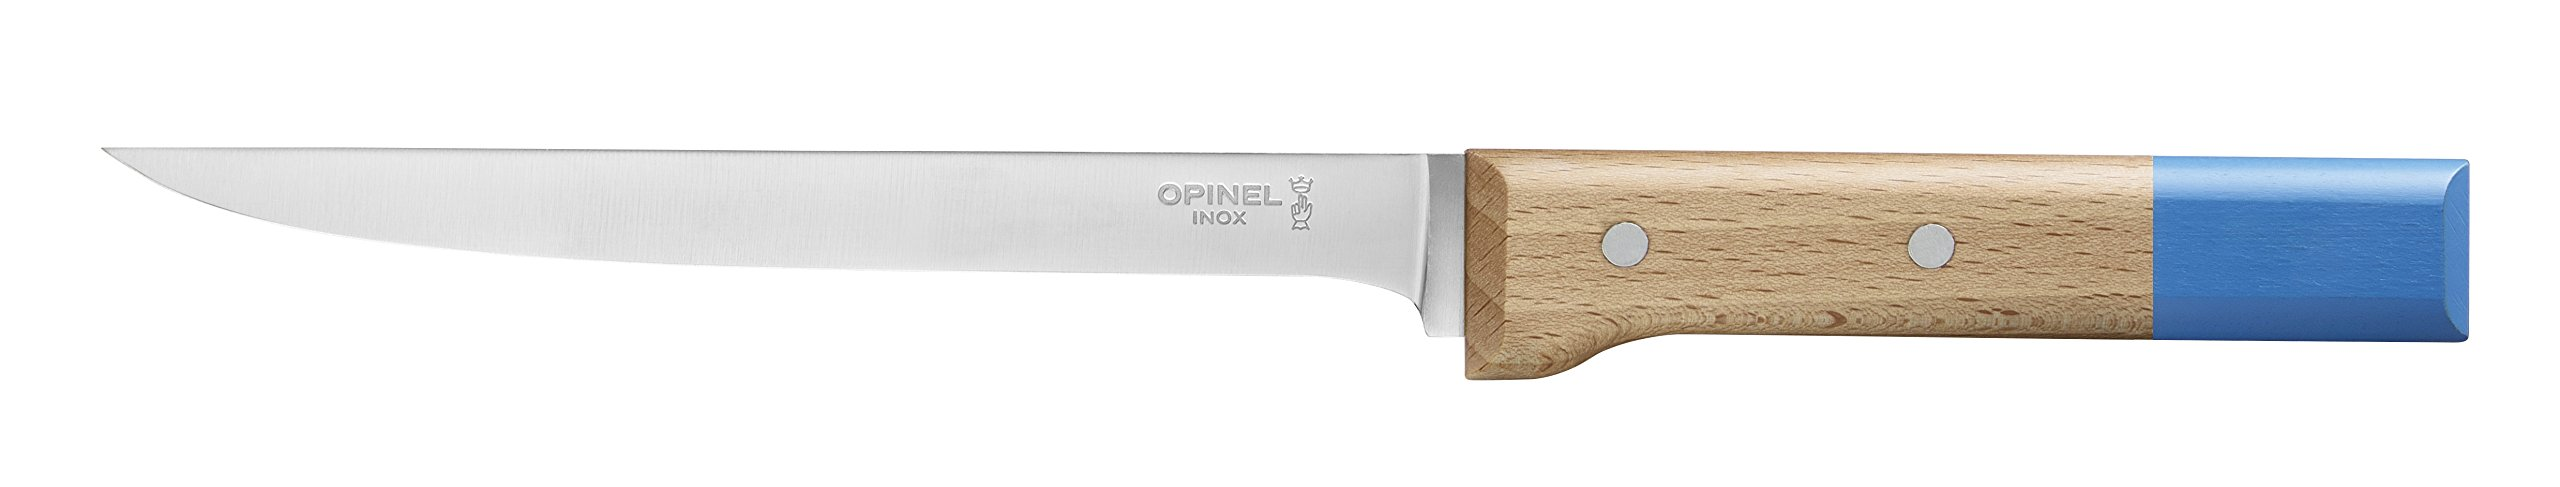 Opinel No 121 Parallele Pop Stainless Steel Fillet Knife